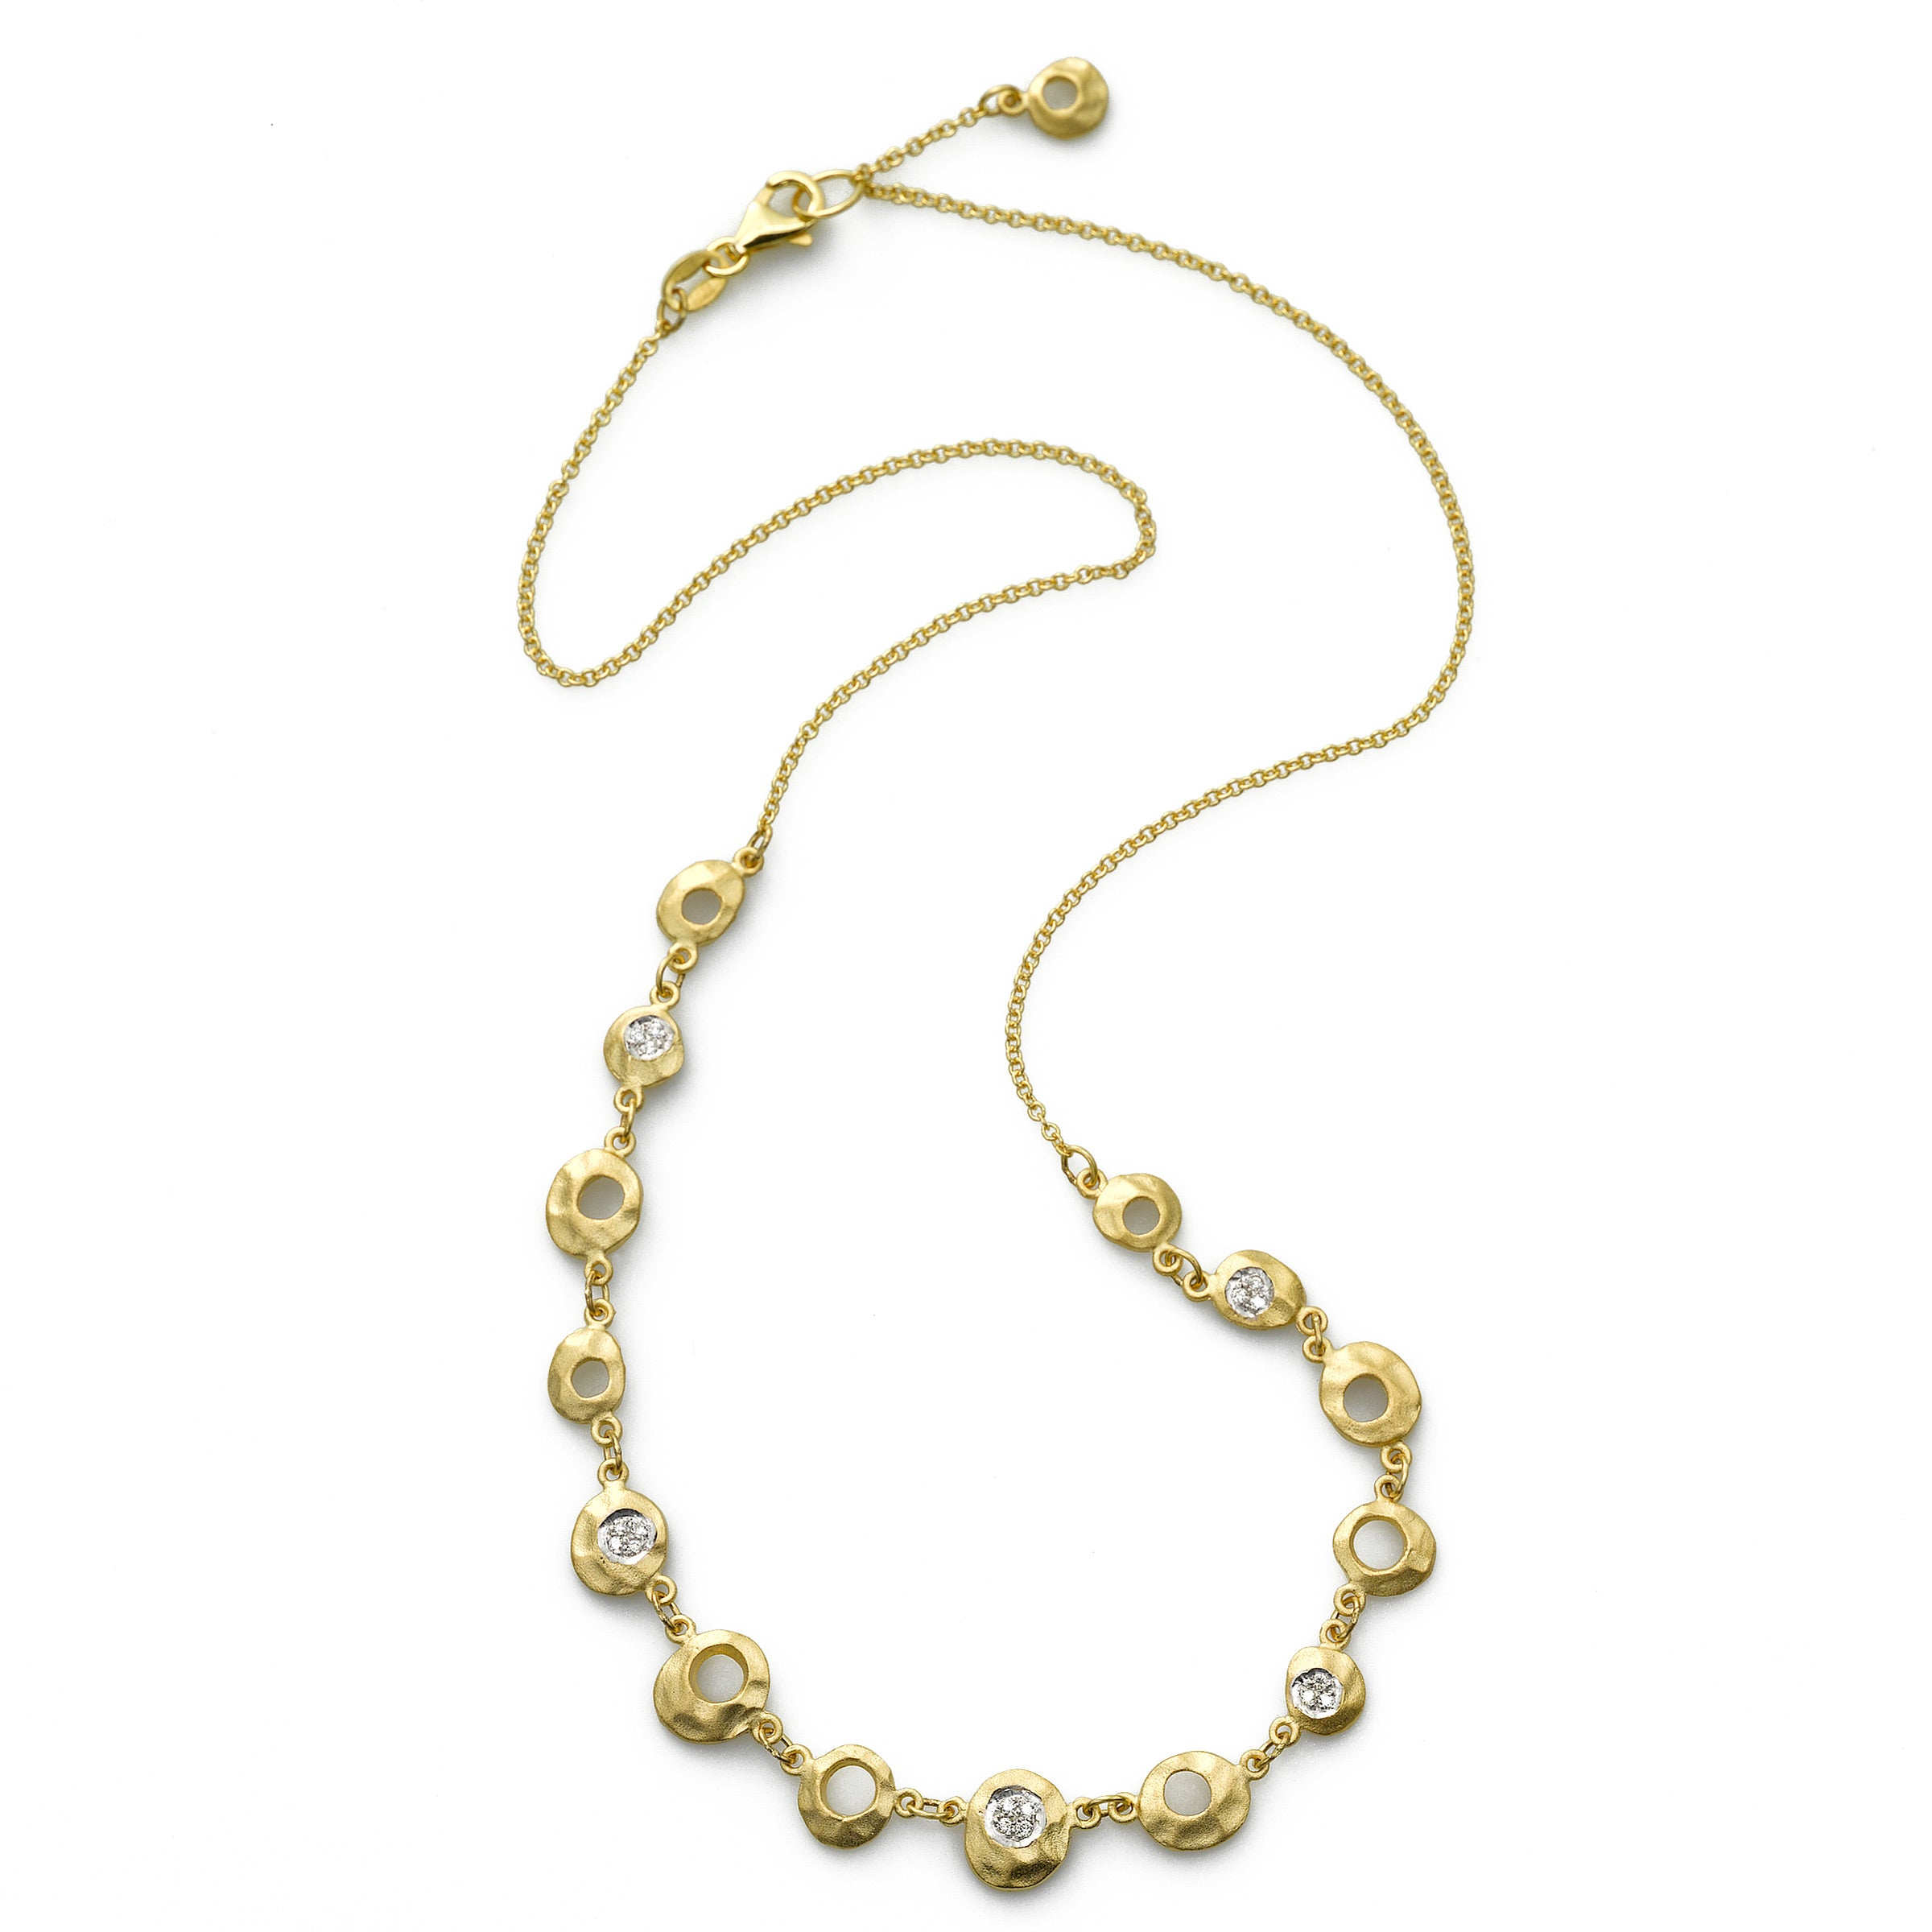 Hammered Diamond Design Necklace, 14K Yellow Gold